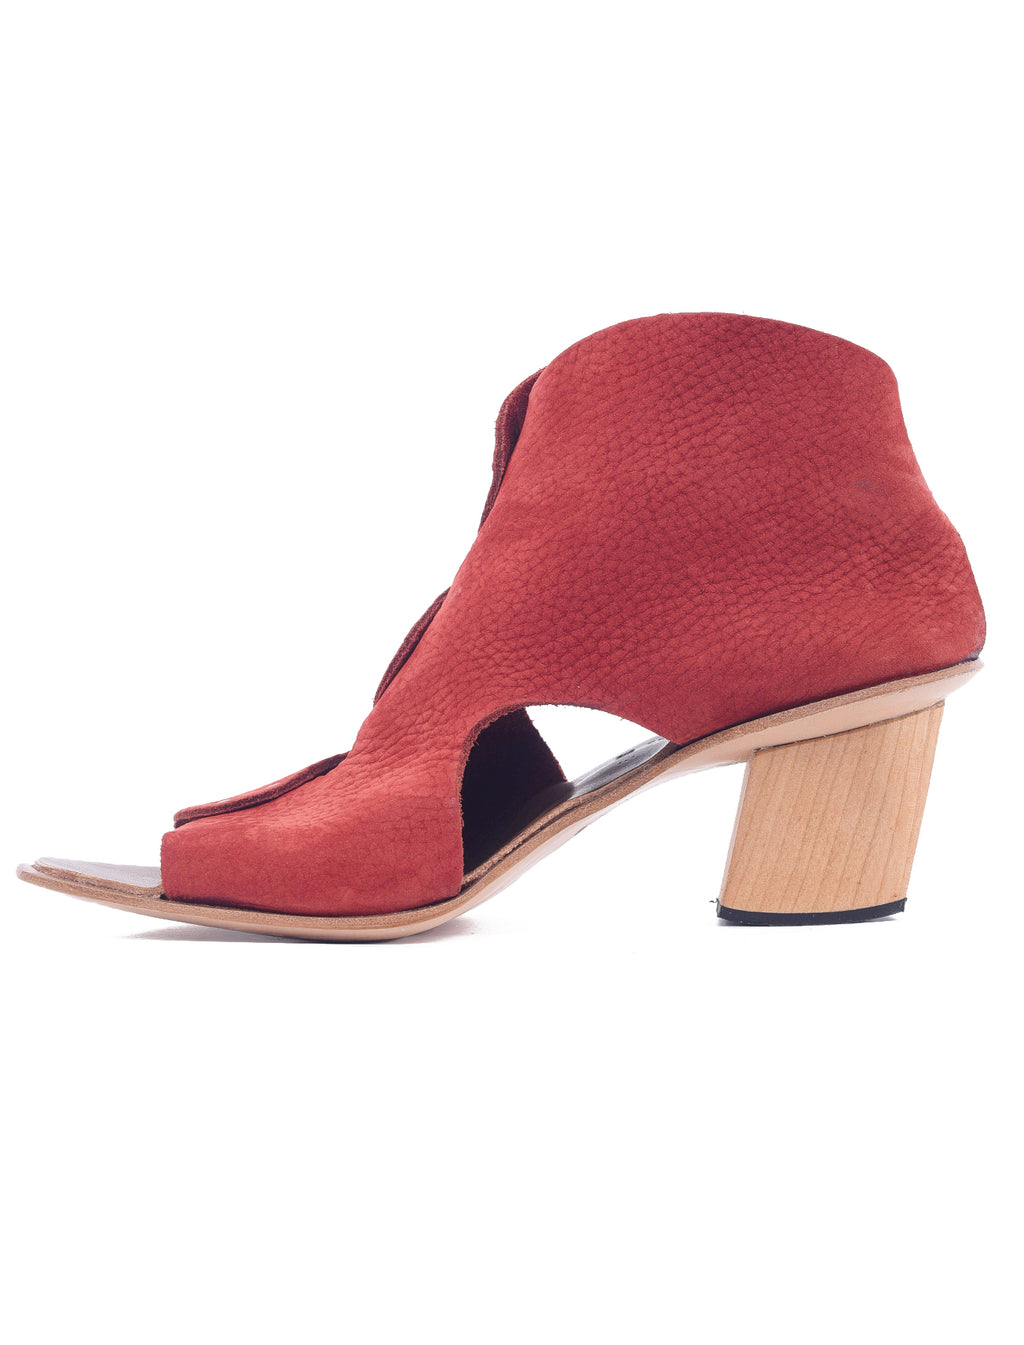 Cydwoq Research Shootie, Red Nubuk